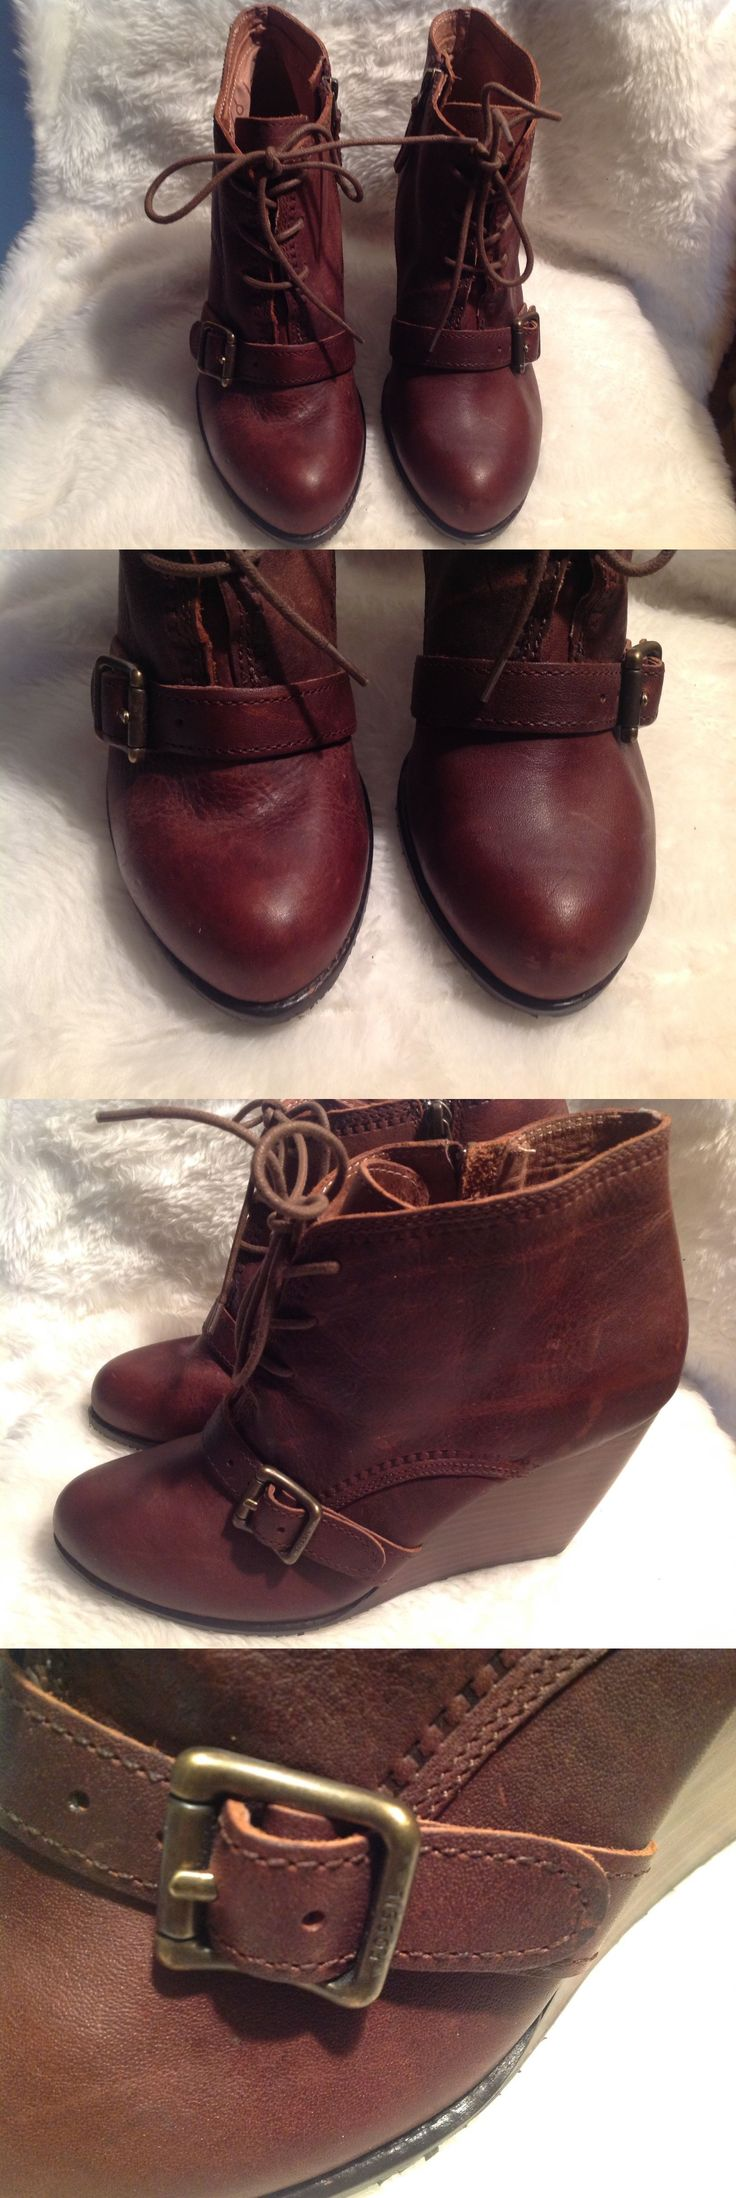 Women Shoes: New Womens Fossil Charlene Wedge Bootie Ankle Boots Brown Leather Sz 9.5 BUY IT NOW ONLY: $34.99